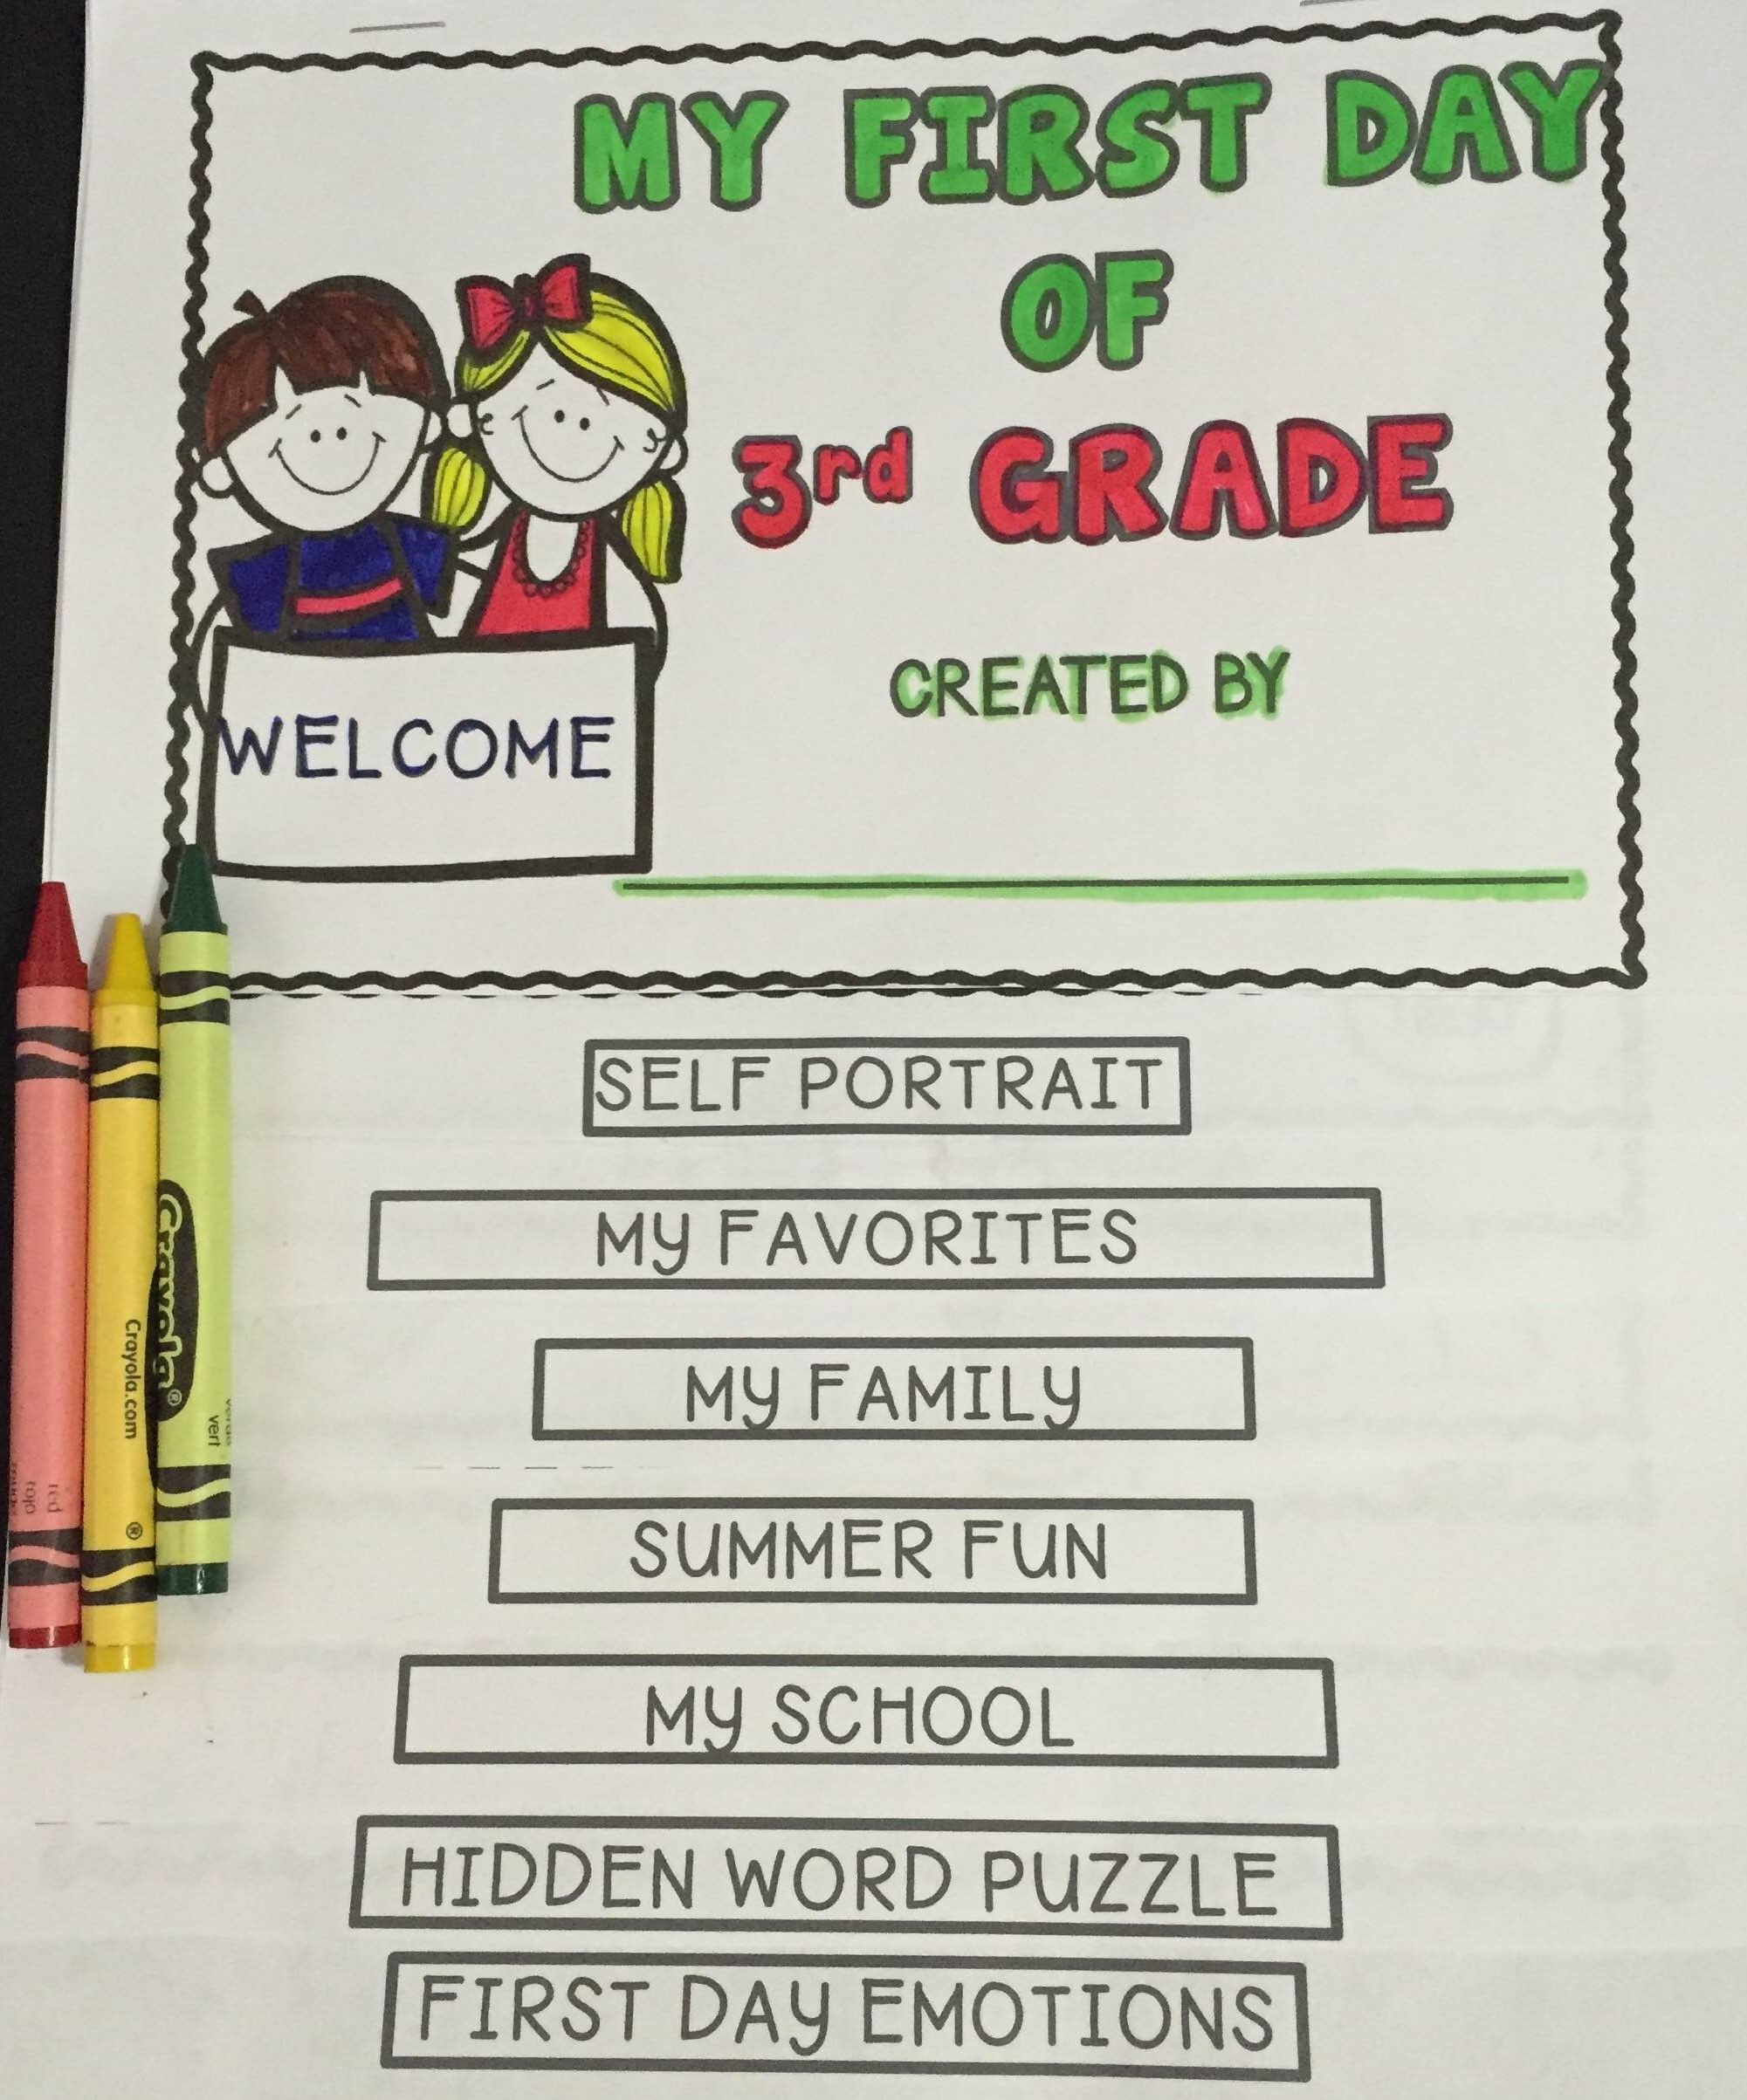 My First Day Of 3rd Grade Flip Book | Flip books, Flipping and ...